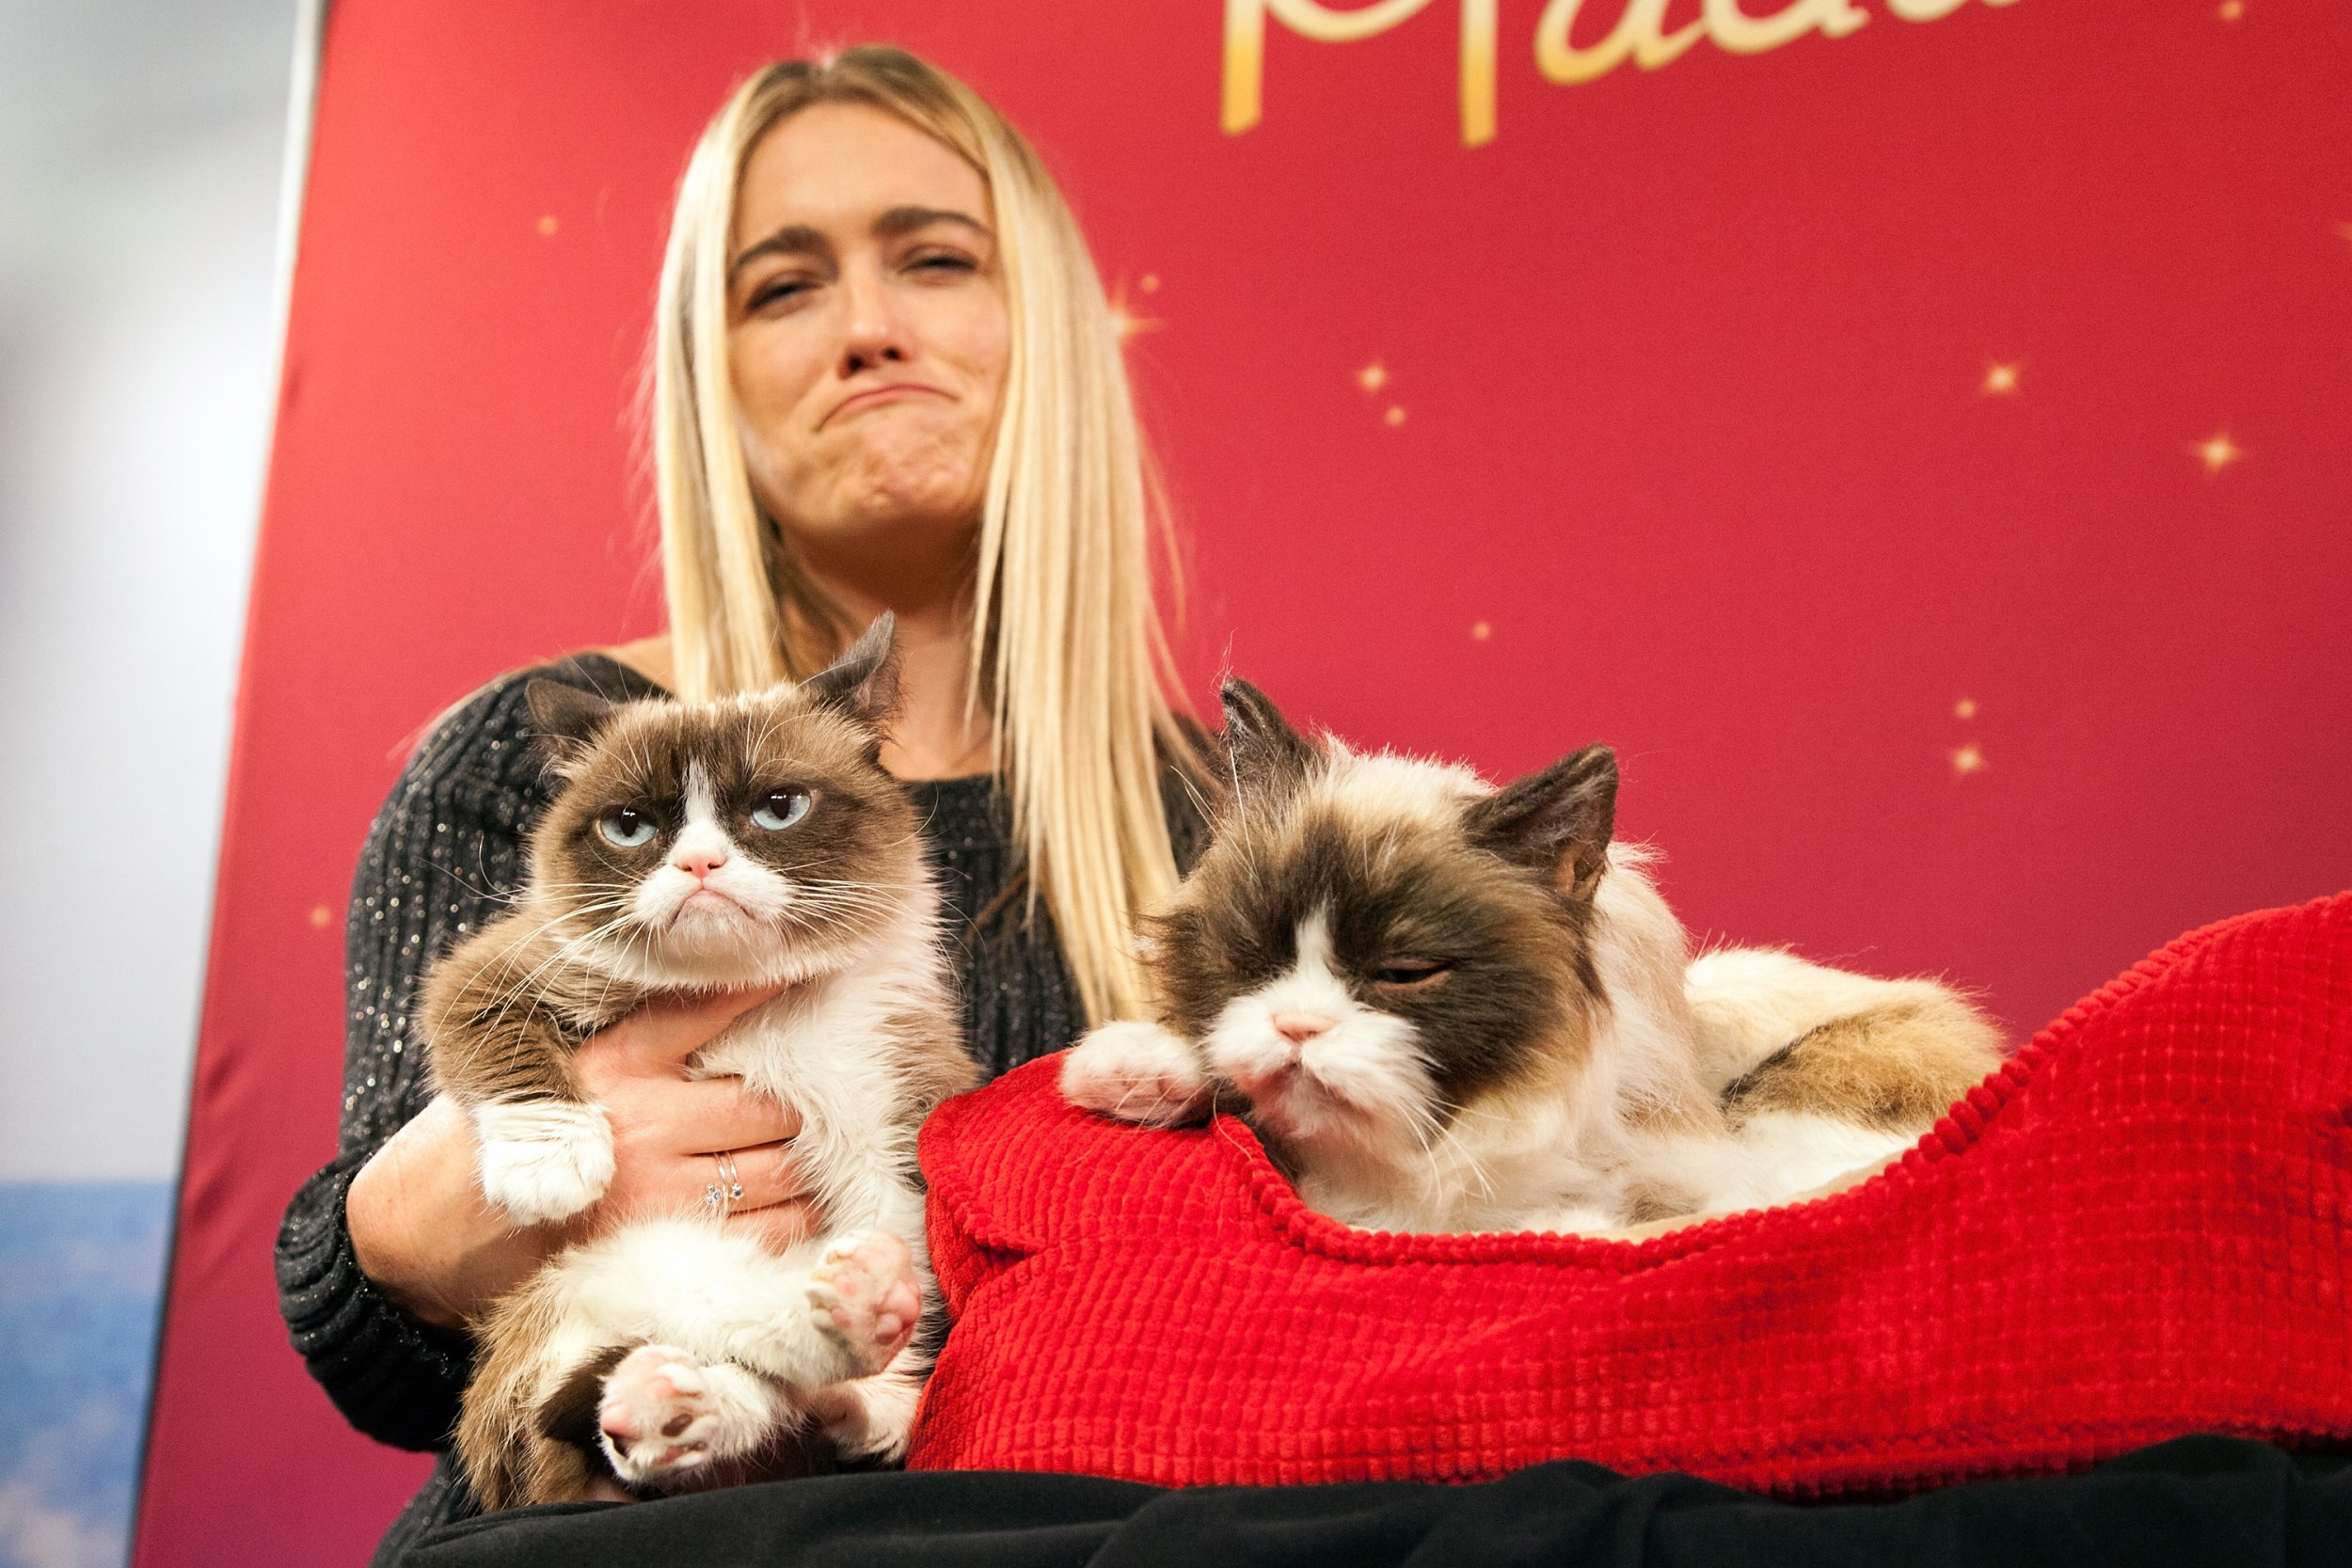 Who is Grumpy Cat's Owner?